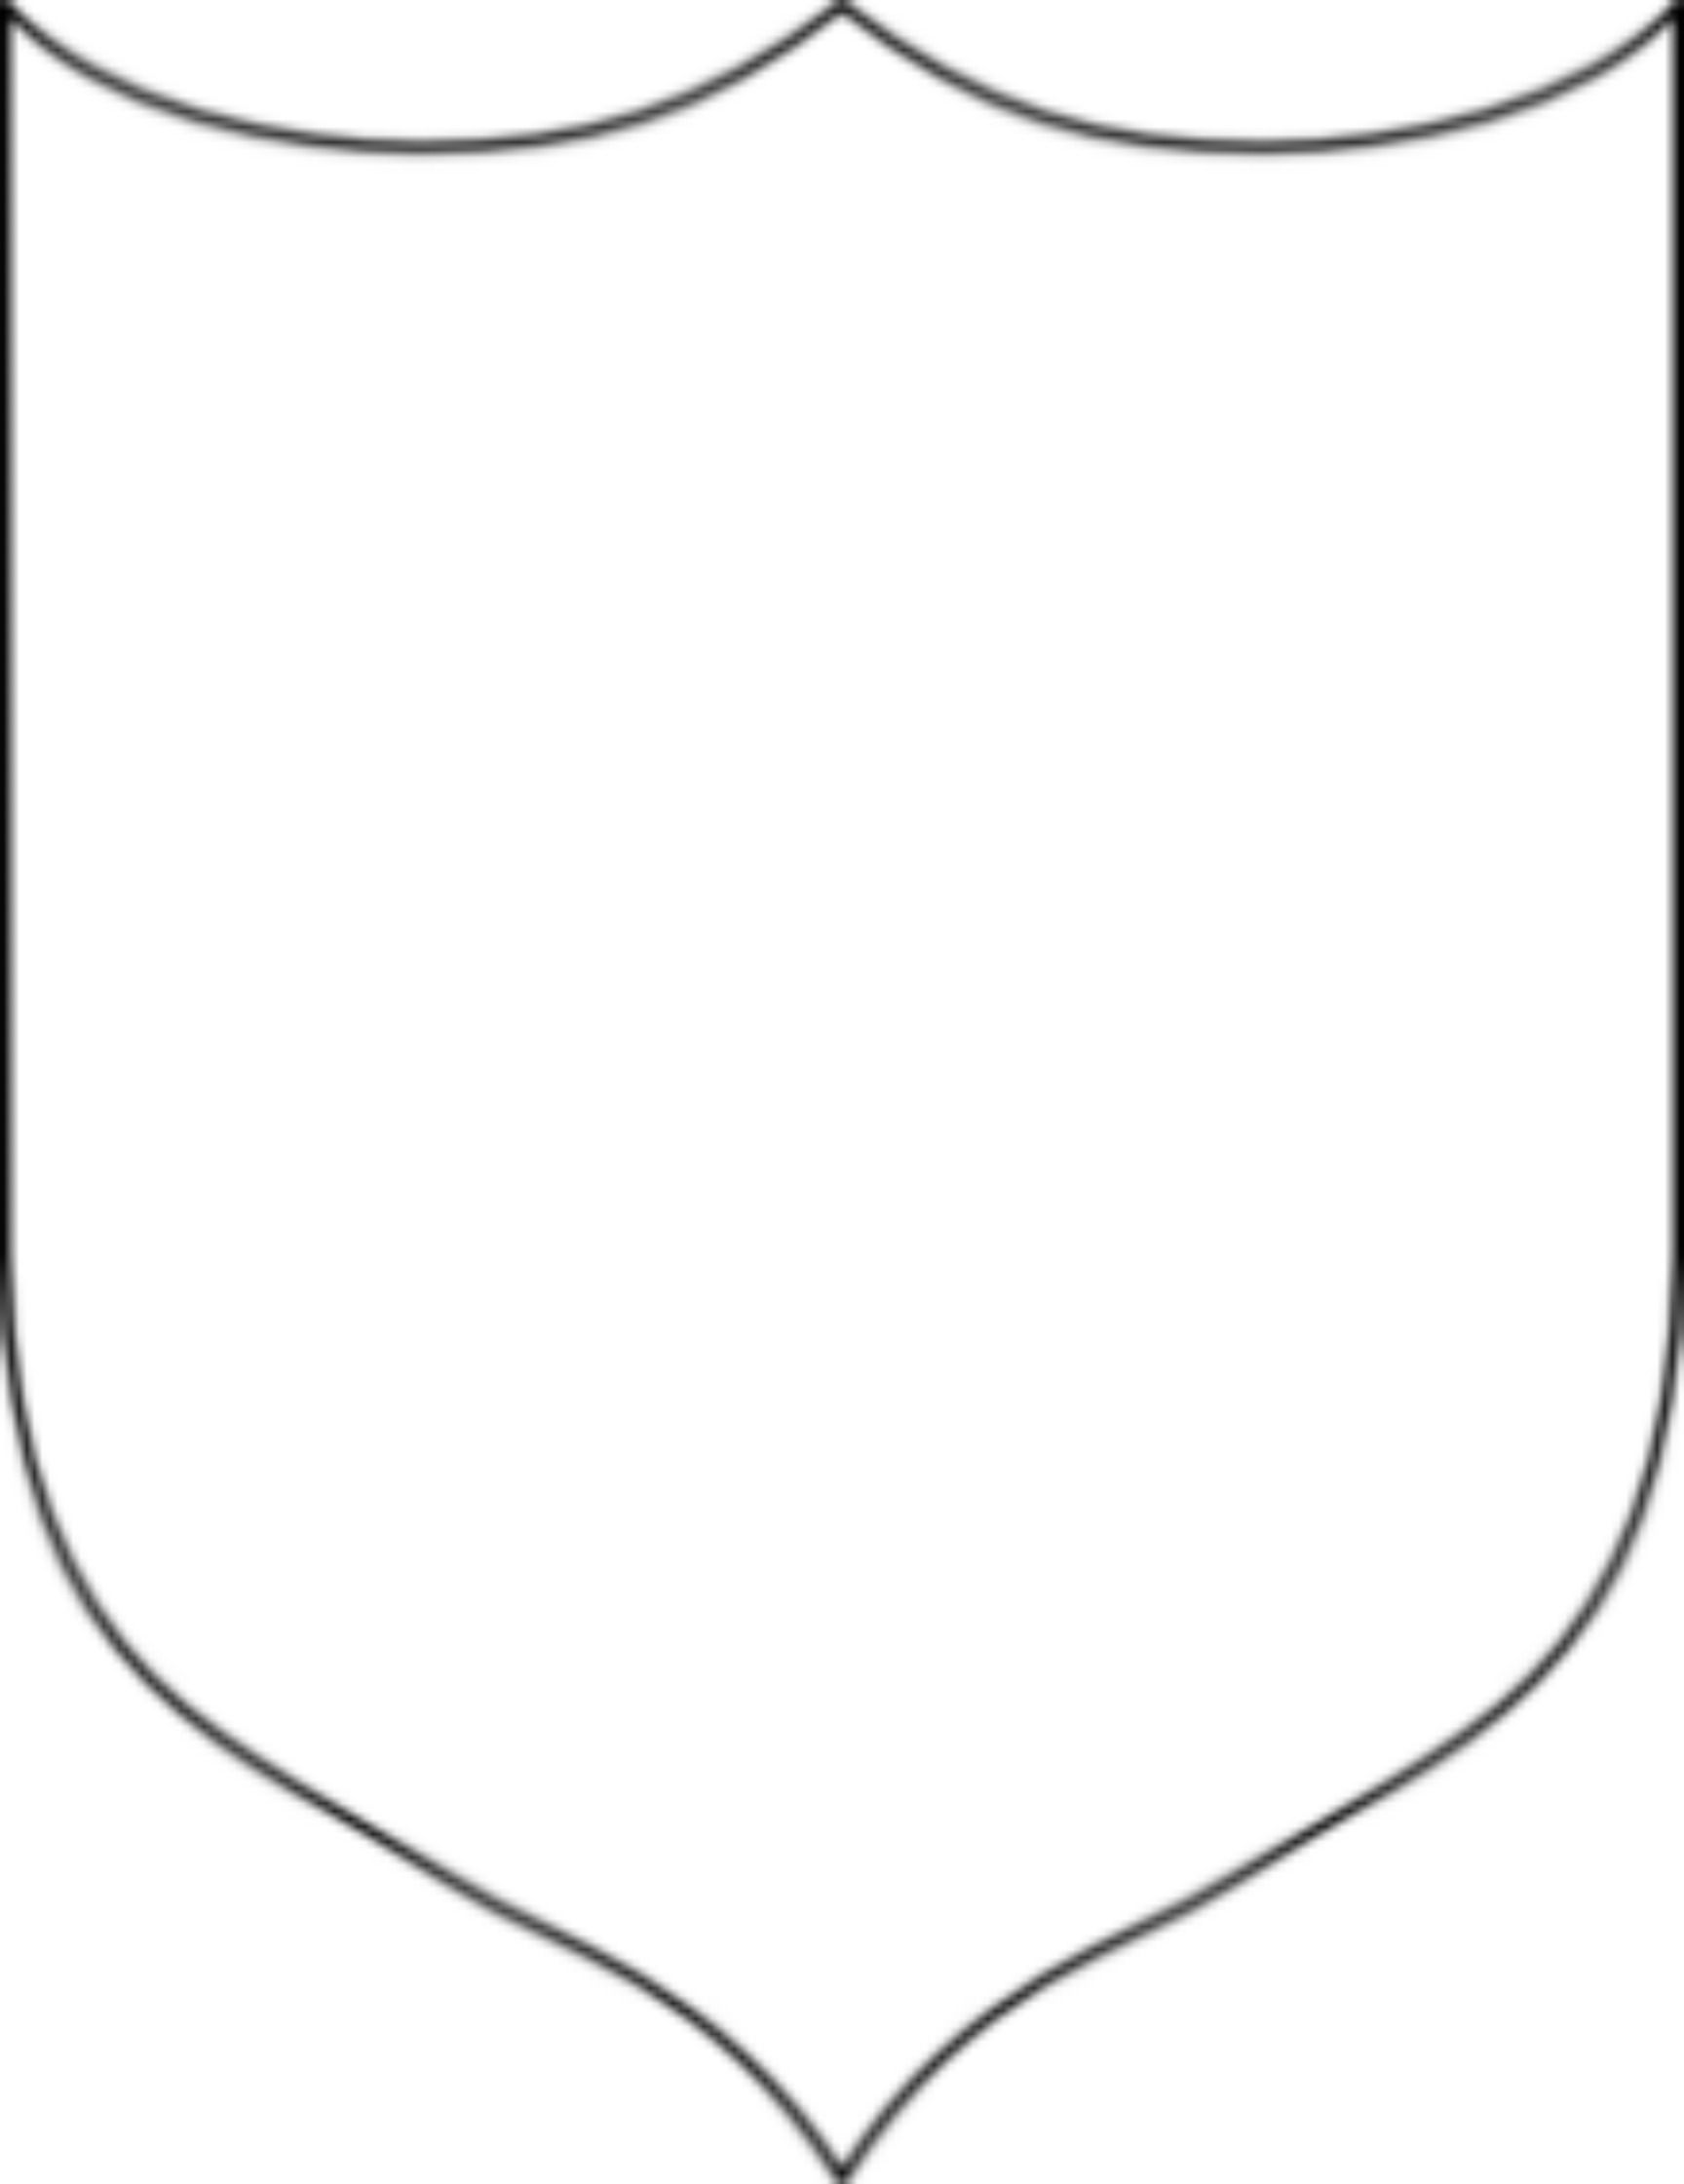 Cool shield template.